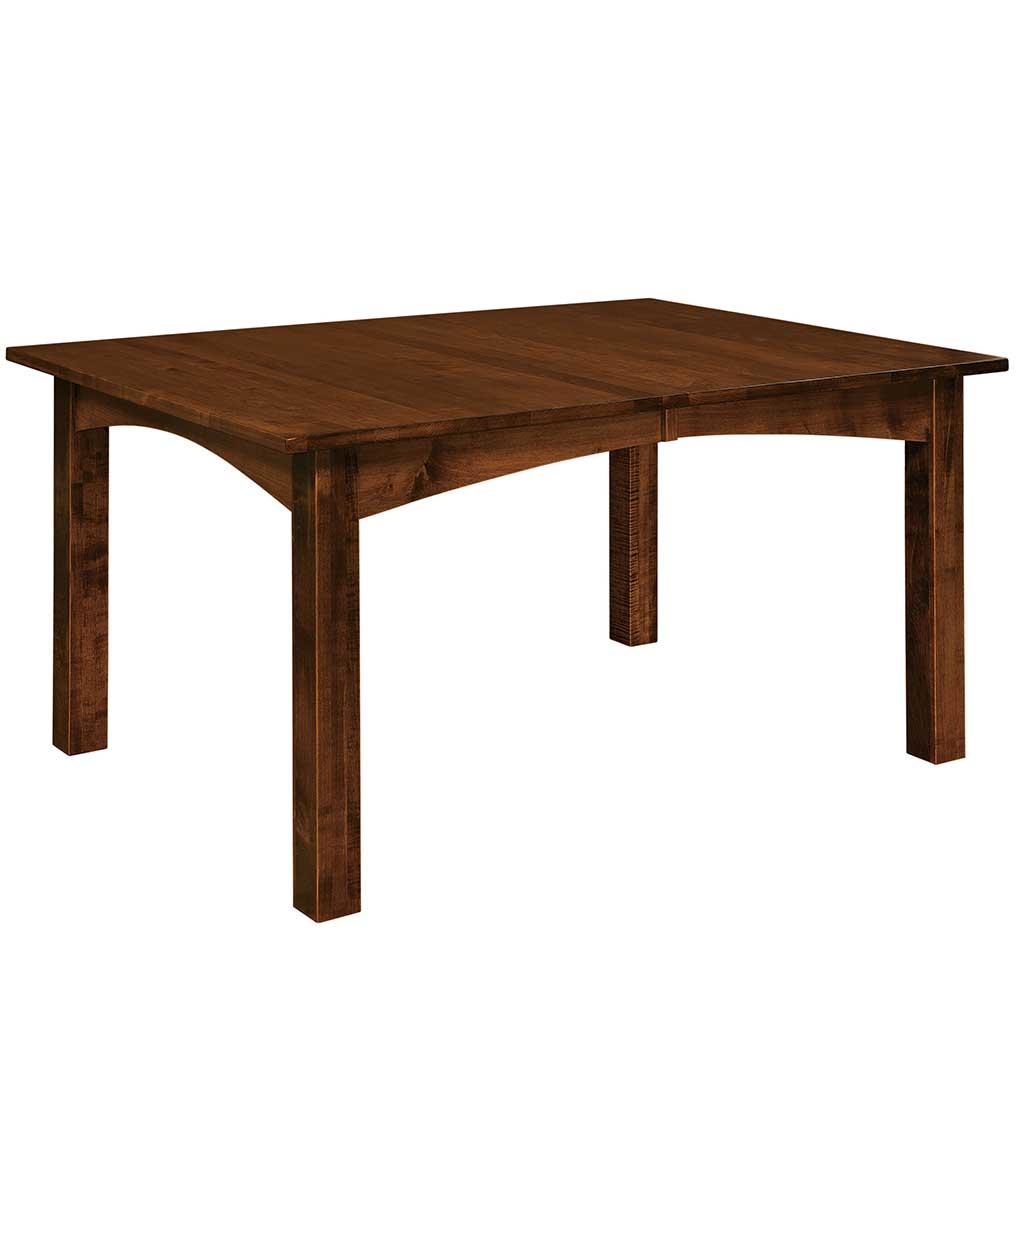 Heidi\'s Dining Table - Amish Direct Furniture